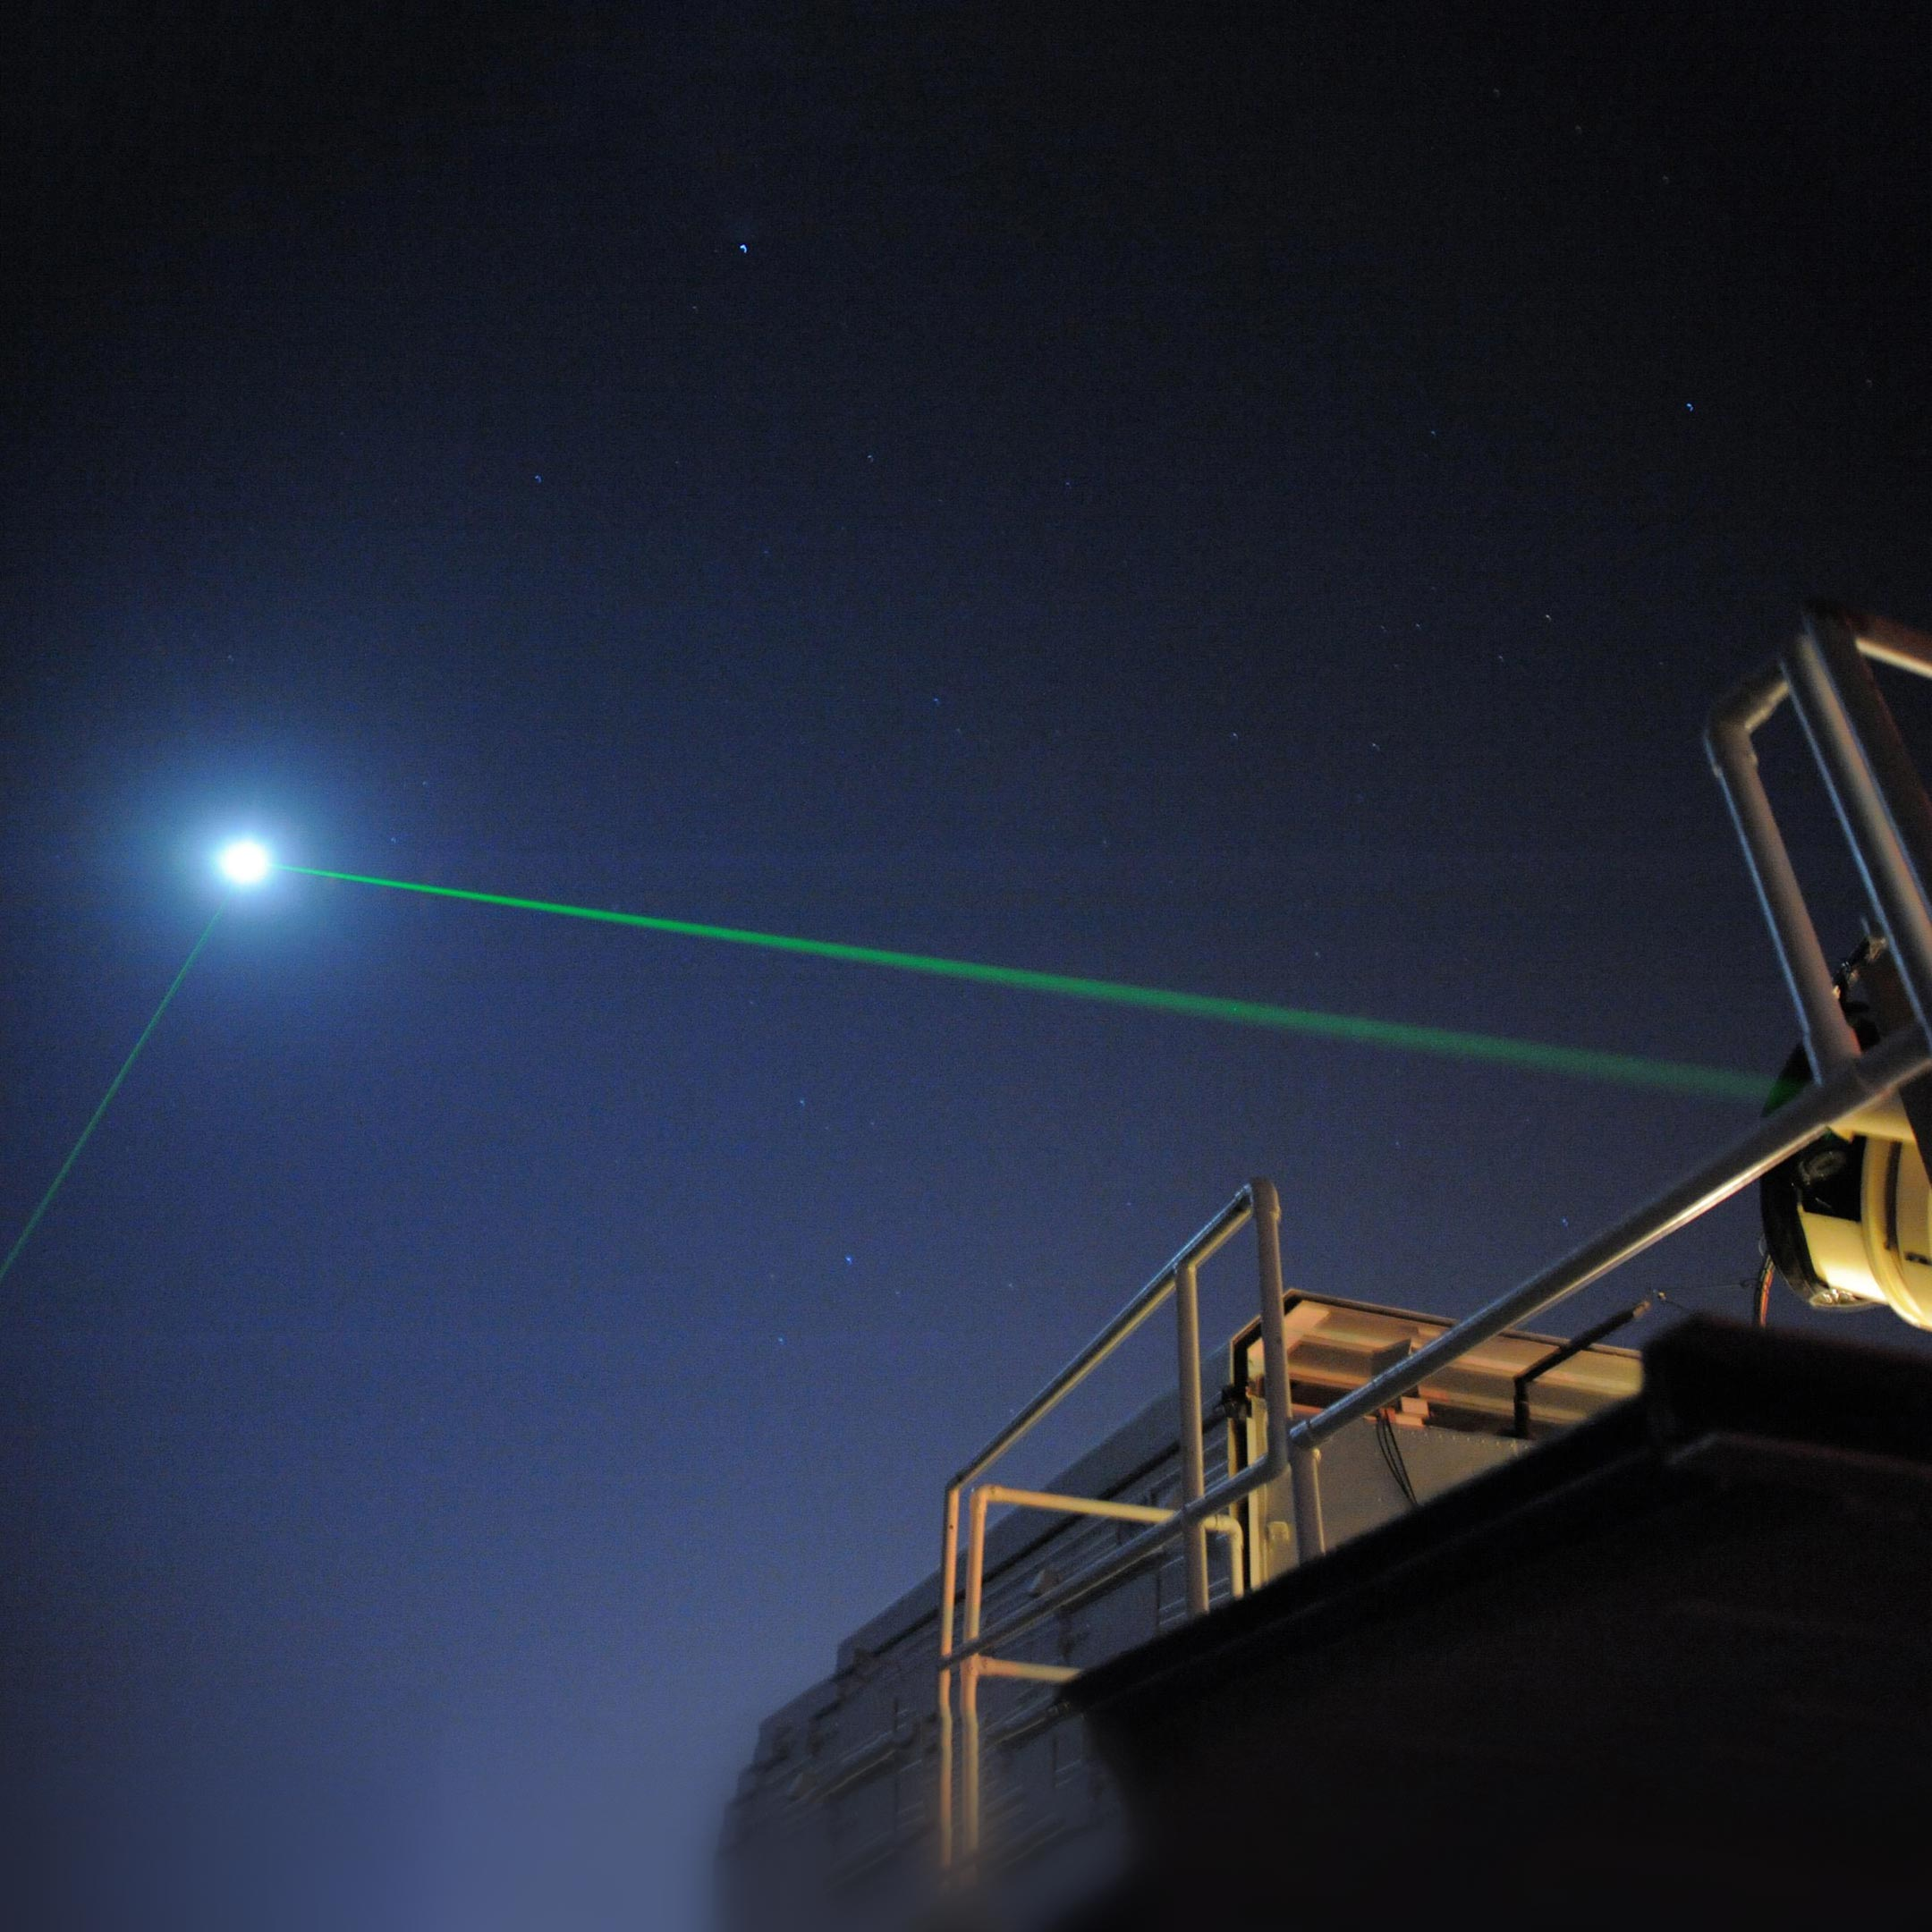 NASA Launched Laser Beams at the Moon – For the First Time, They Received a Signal Back - SciTechDaily